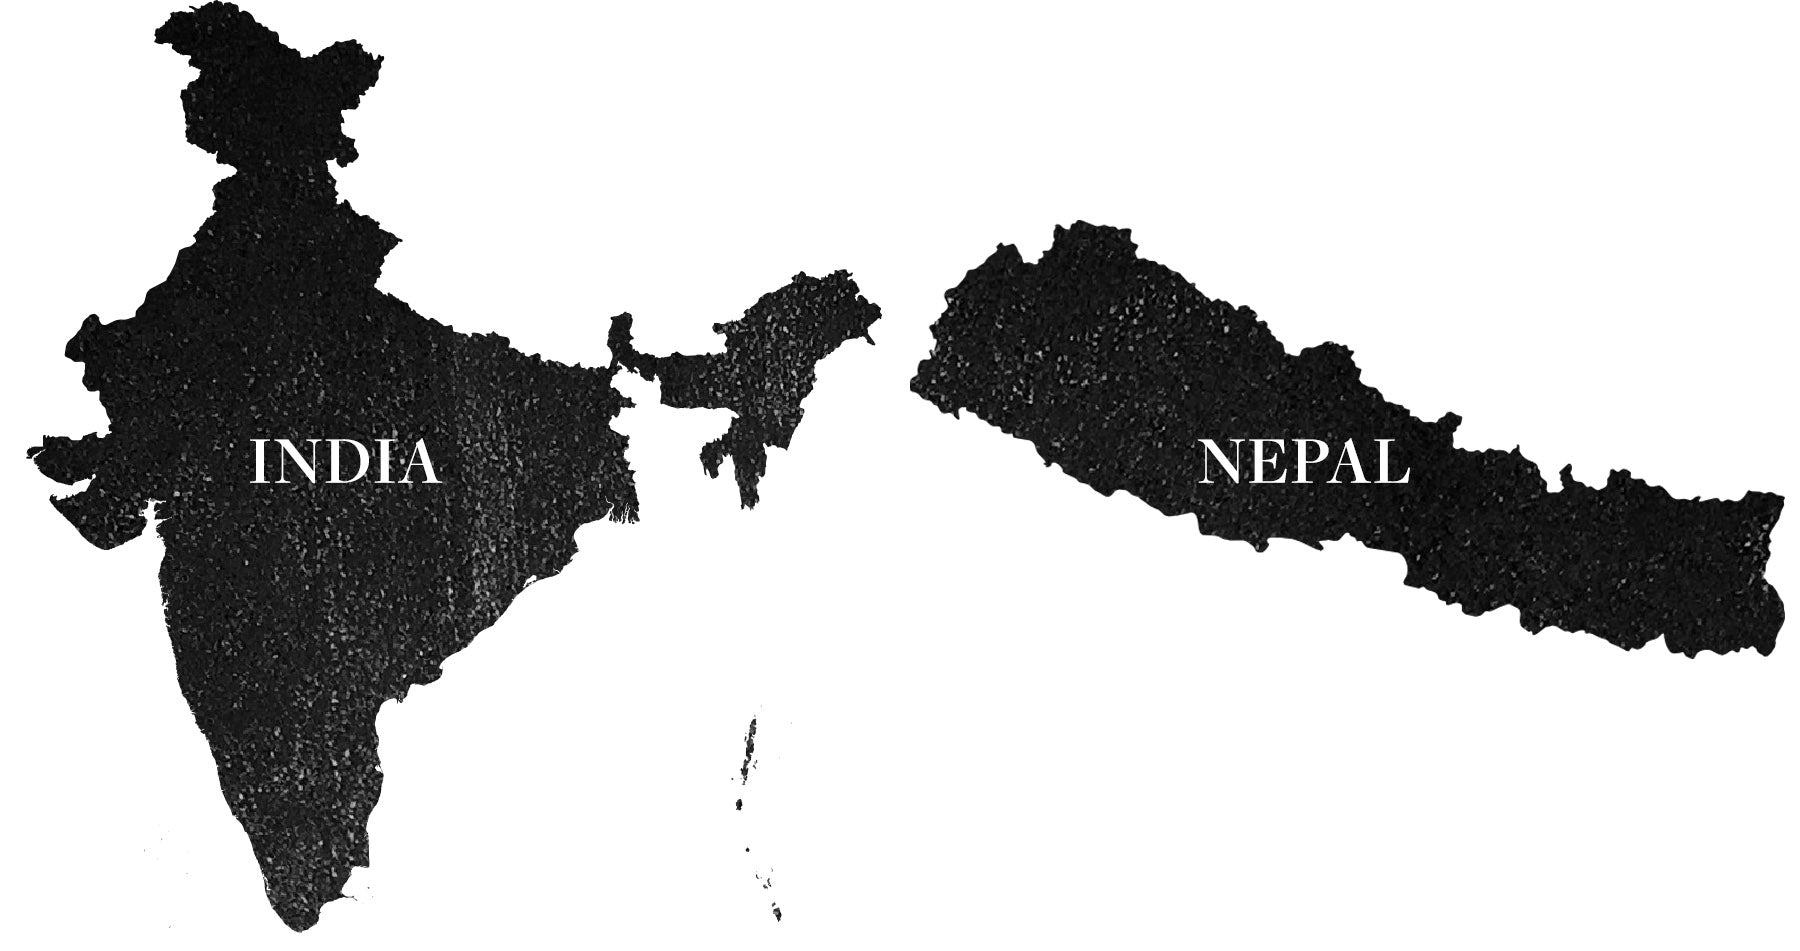 Nepal and India